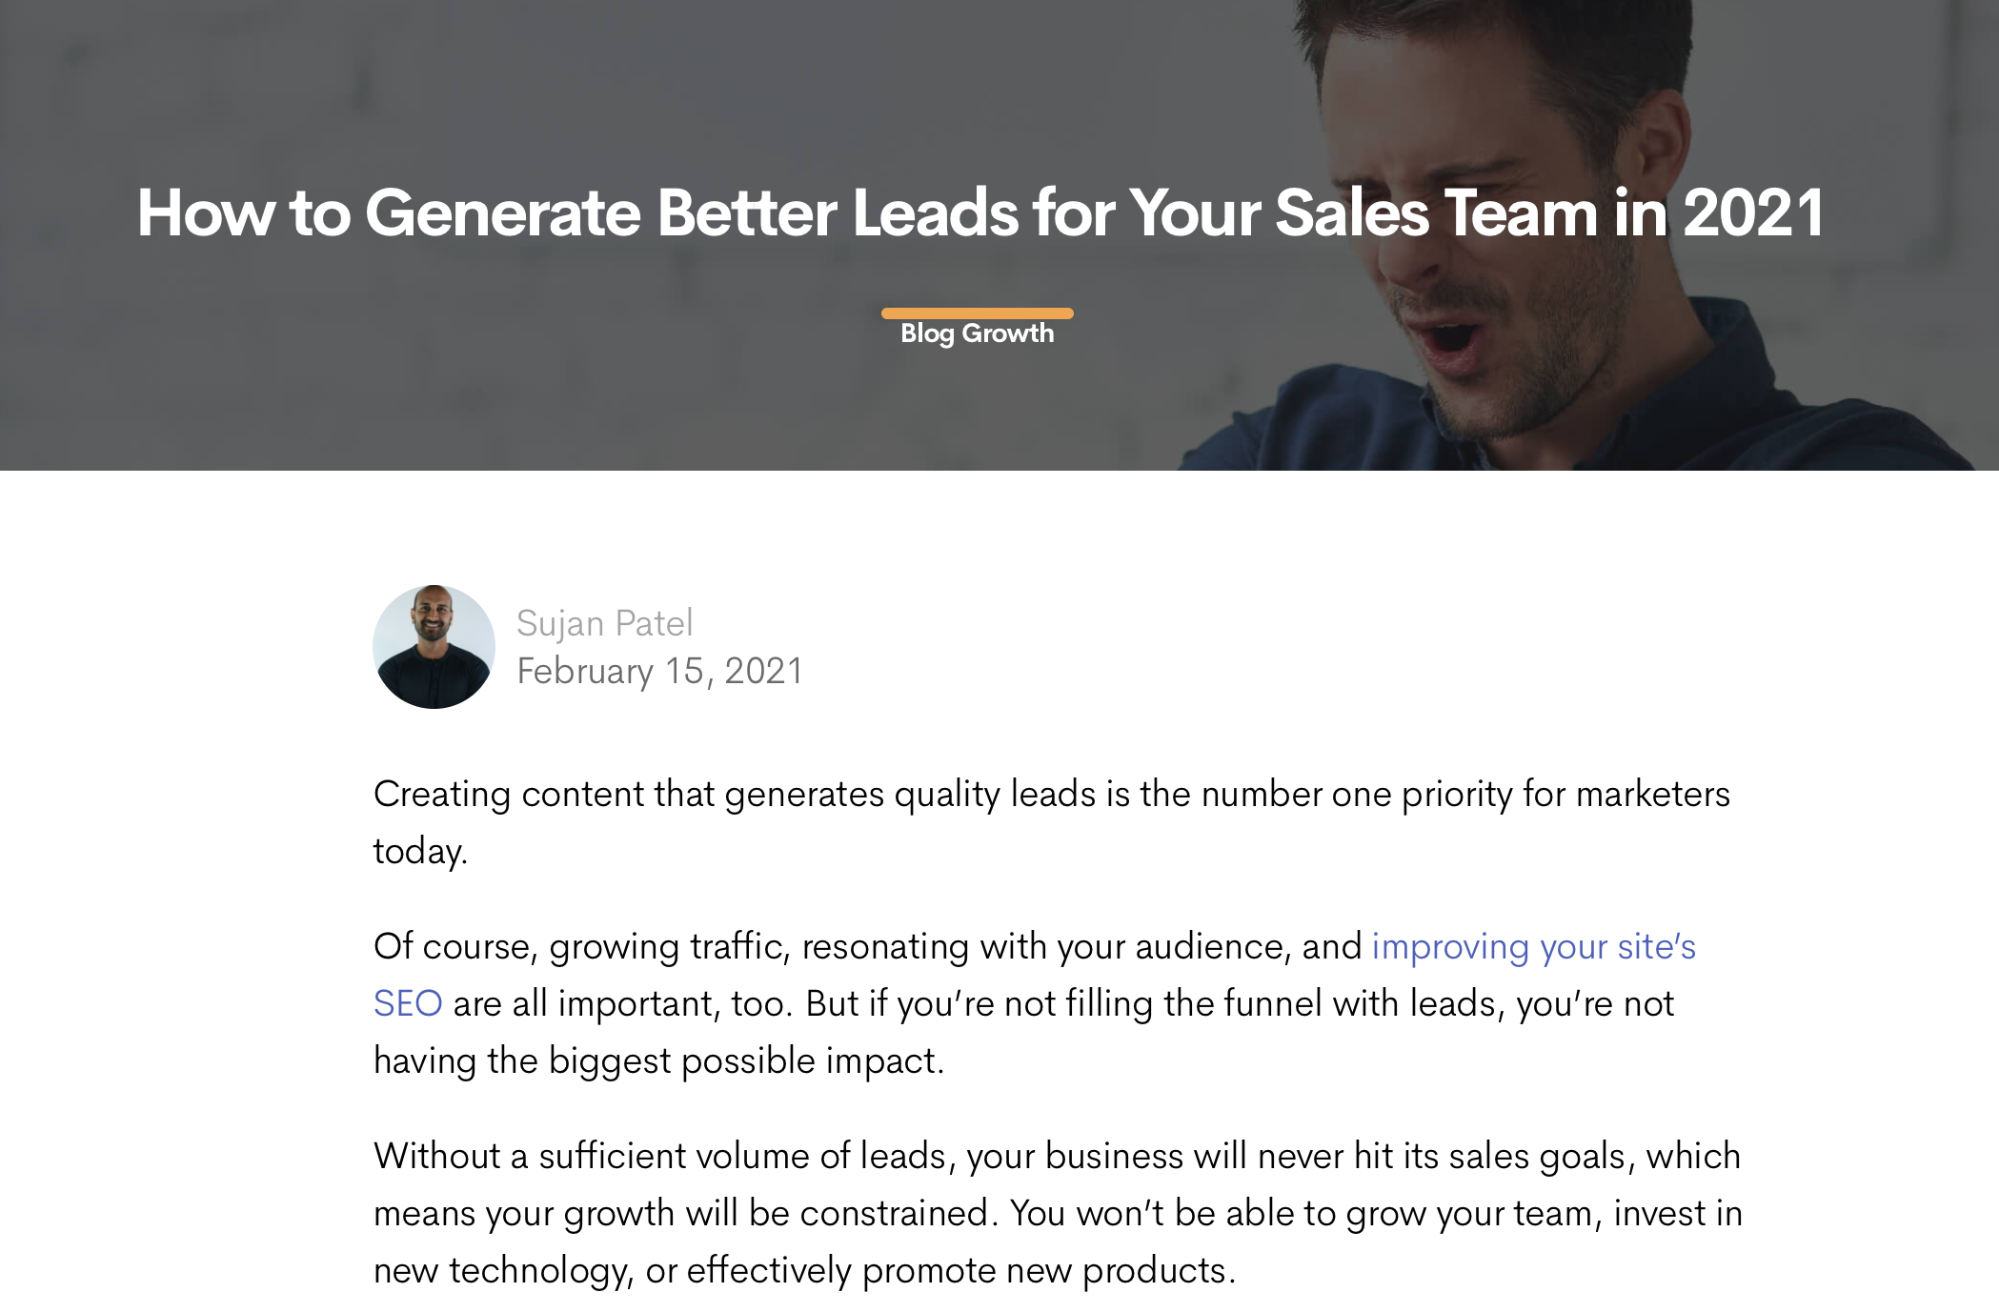 Long-form content marketing in the form of a blog from wordable.io